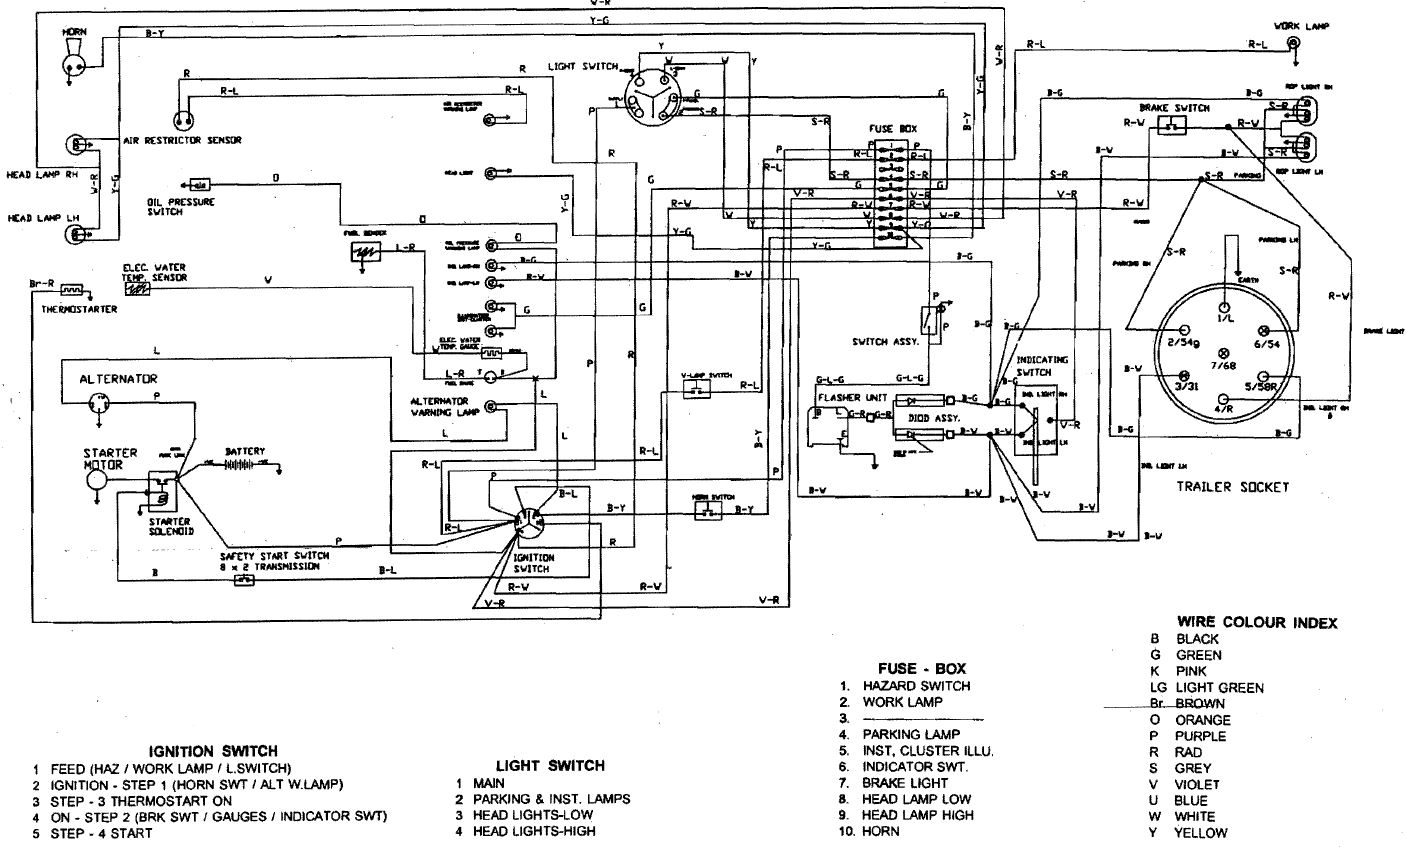 Wiring Diagram For John Deere List Of Schematic Circuit Z225 Ignition Switch Rh Tractorbynet Com 420 Lx172